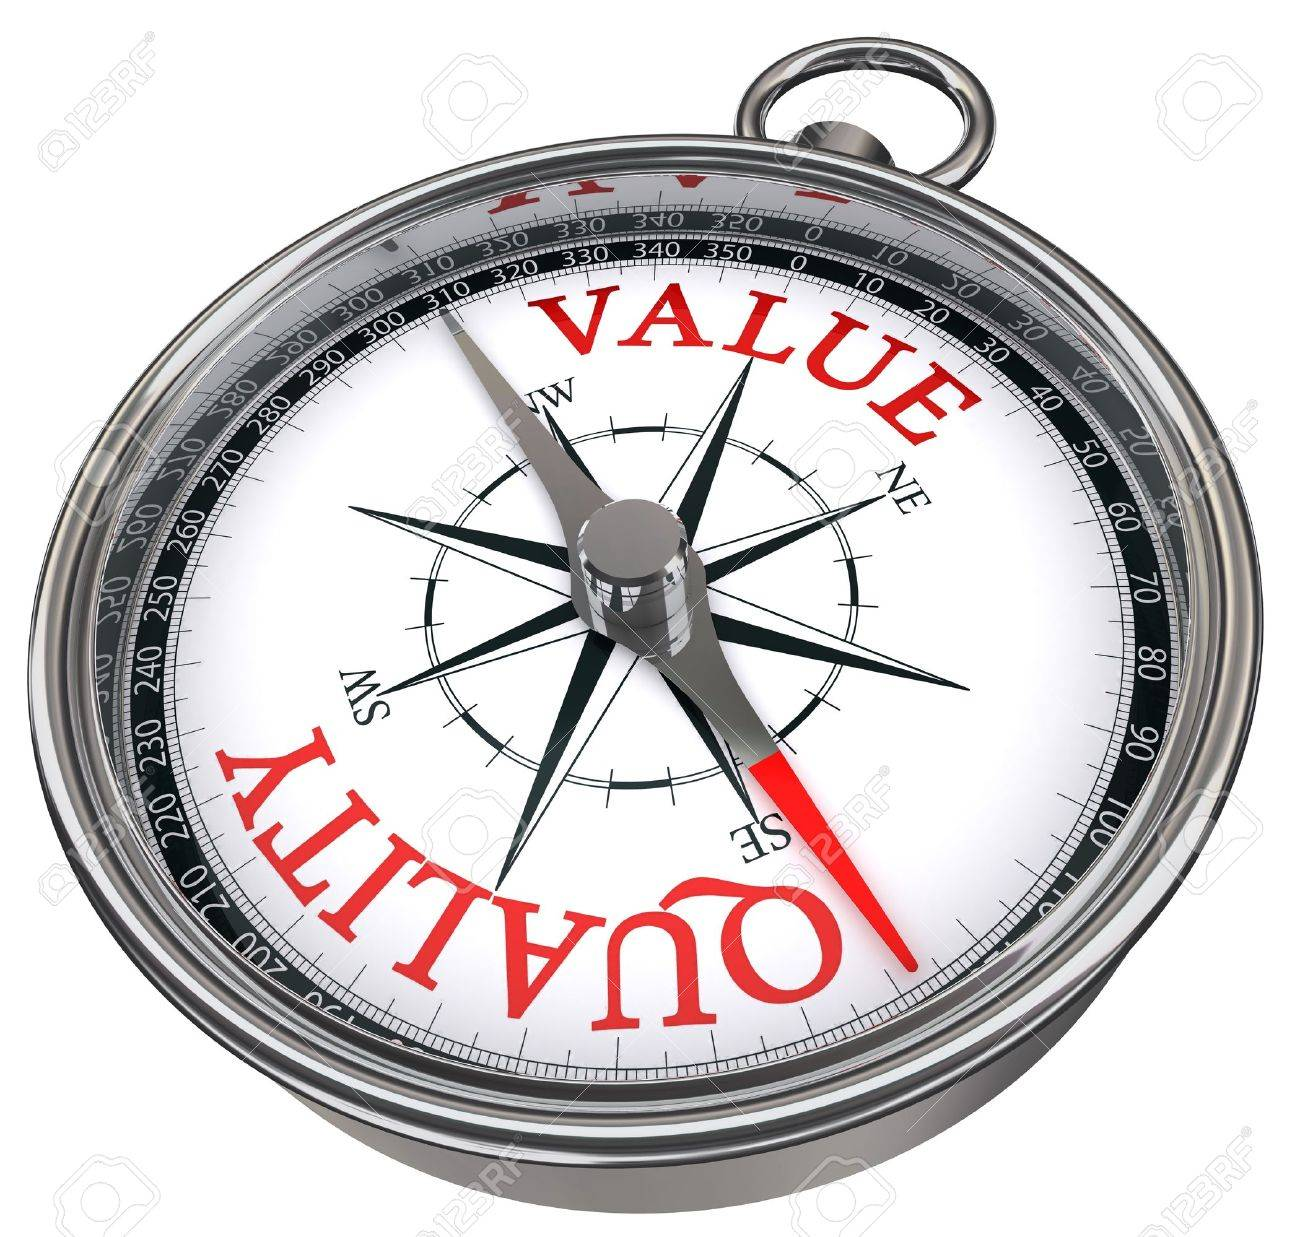 quality versus value concept compass isolated on white background Stock Photo - 10941403